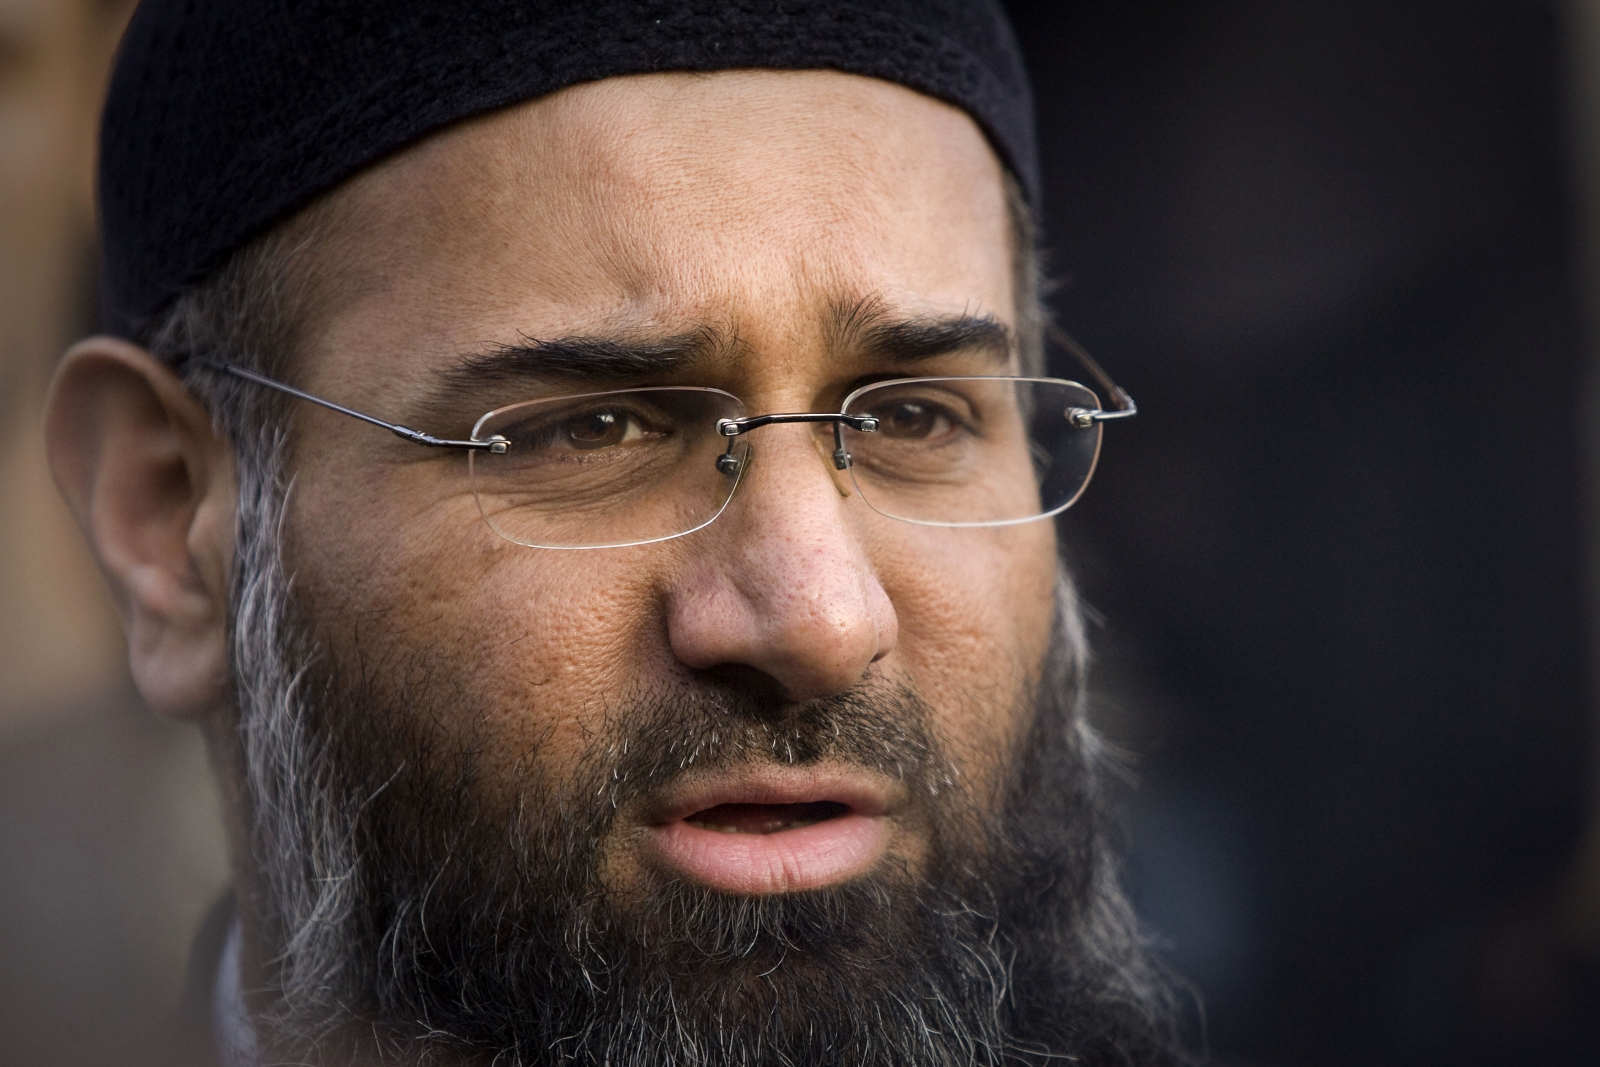 Anjem Choudary invited to address Oxford University